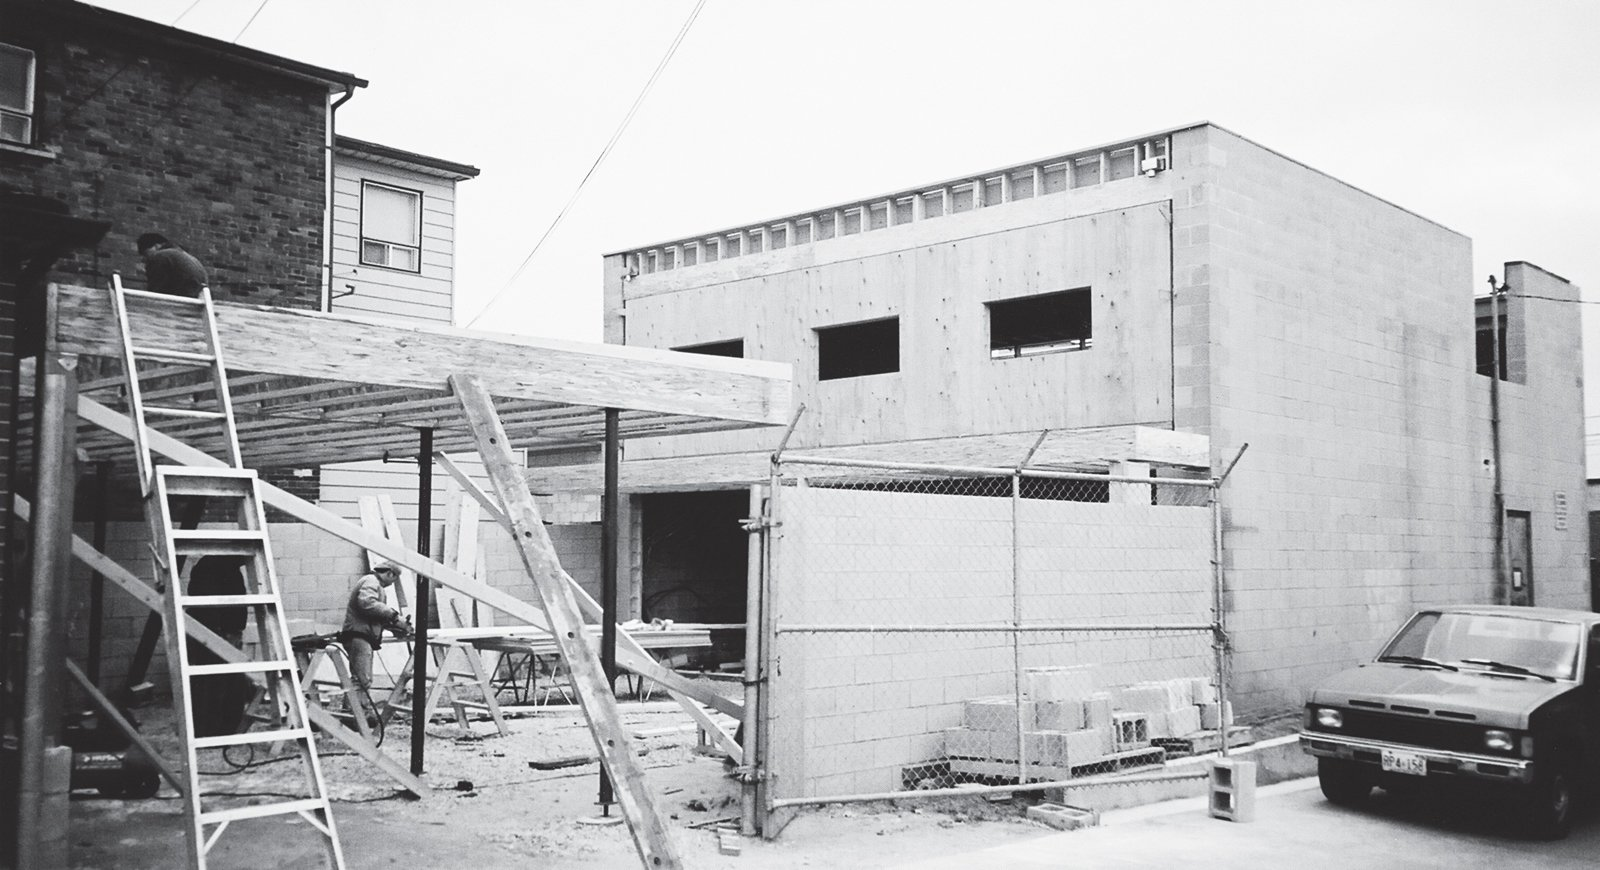 A photograph from 2002 shows the renovation in progress.